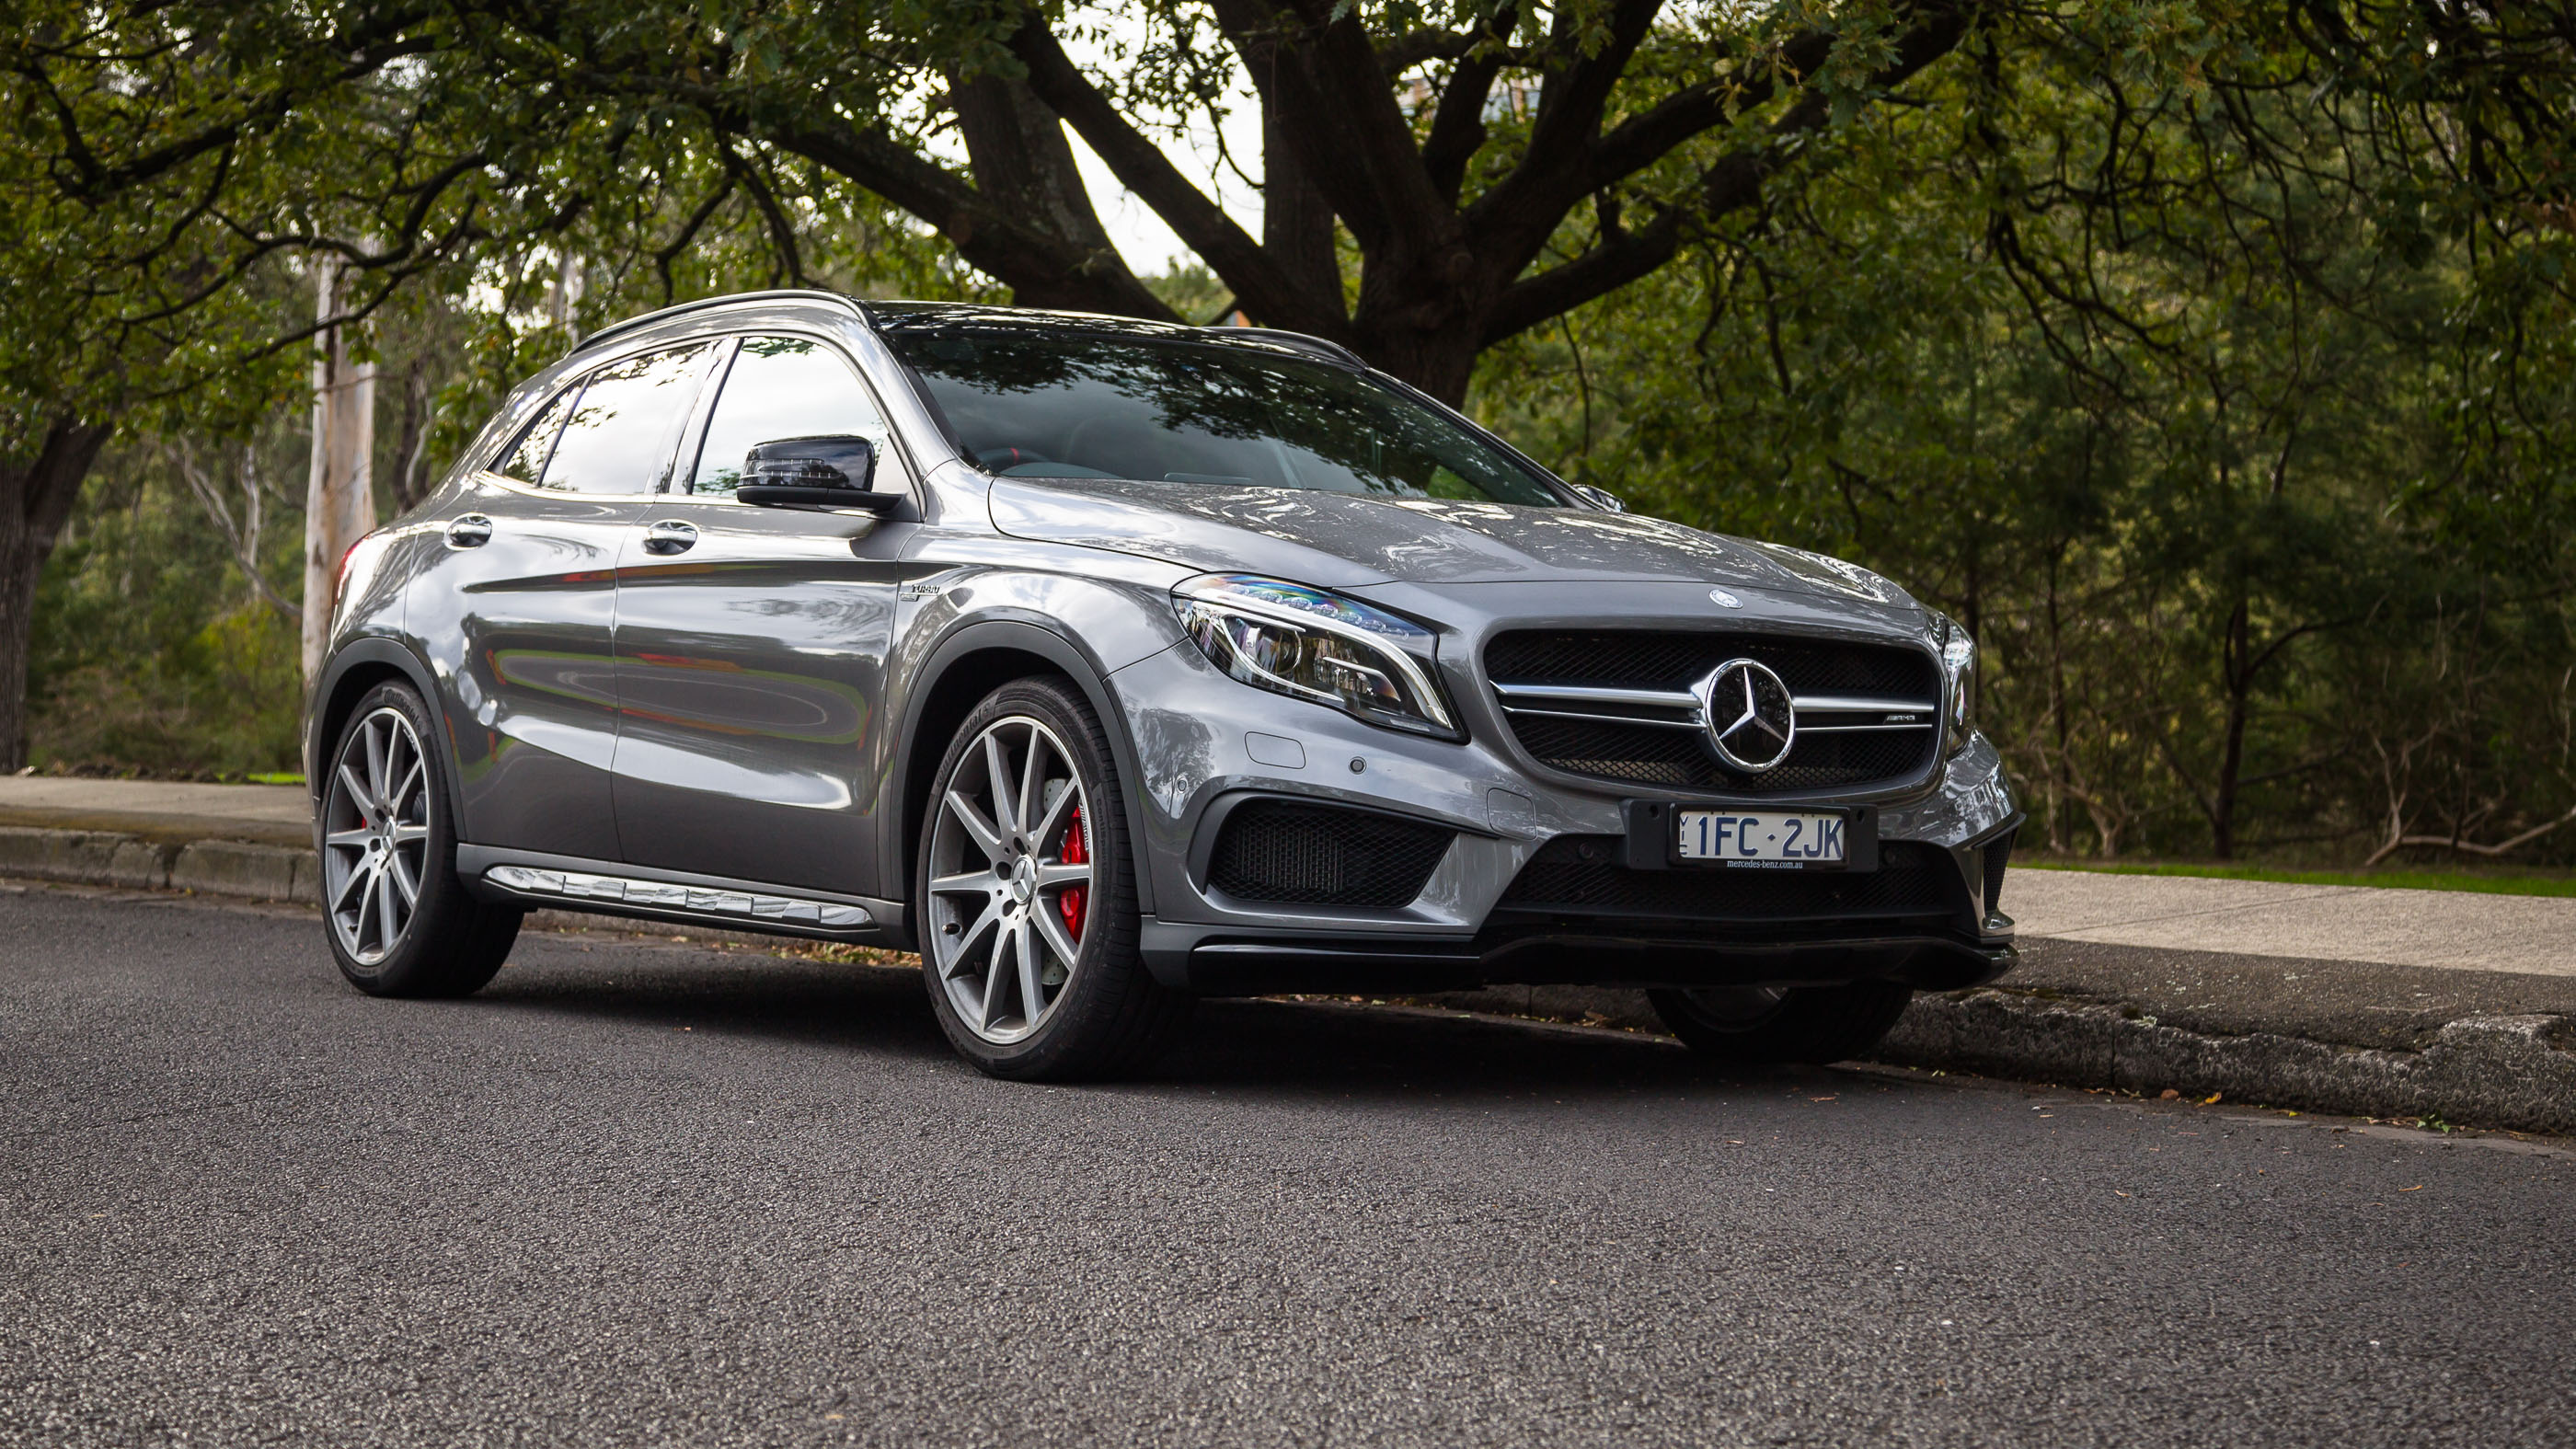 Mercedes-Benz GLA 45 AMG photo 167694